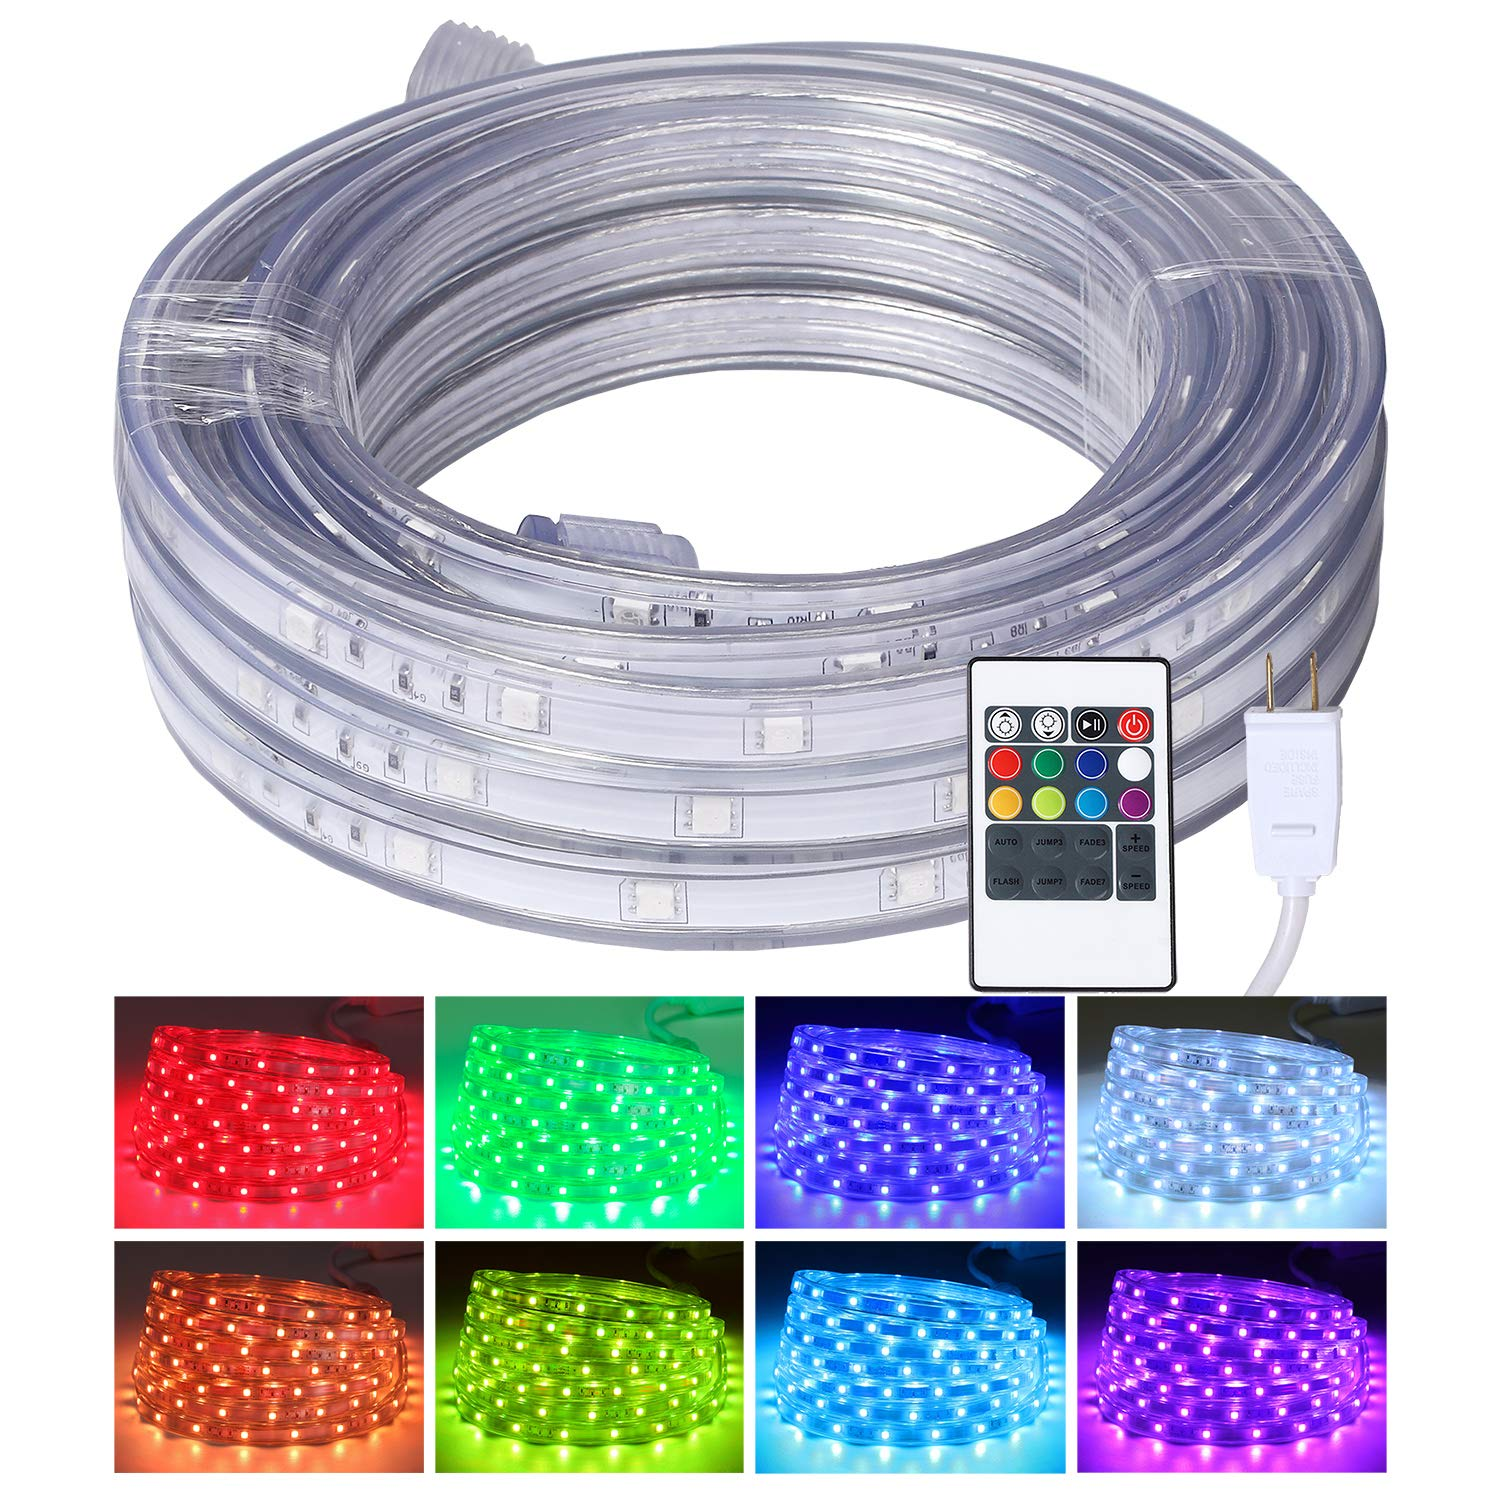 Flexible Changing Waterproof Connectable Decorative